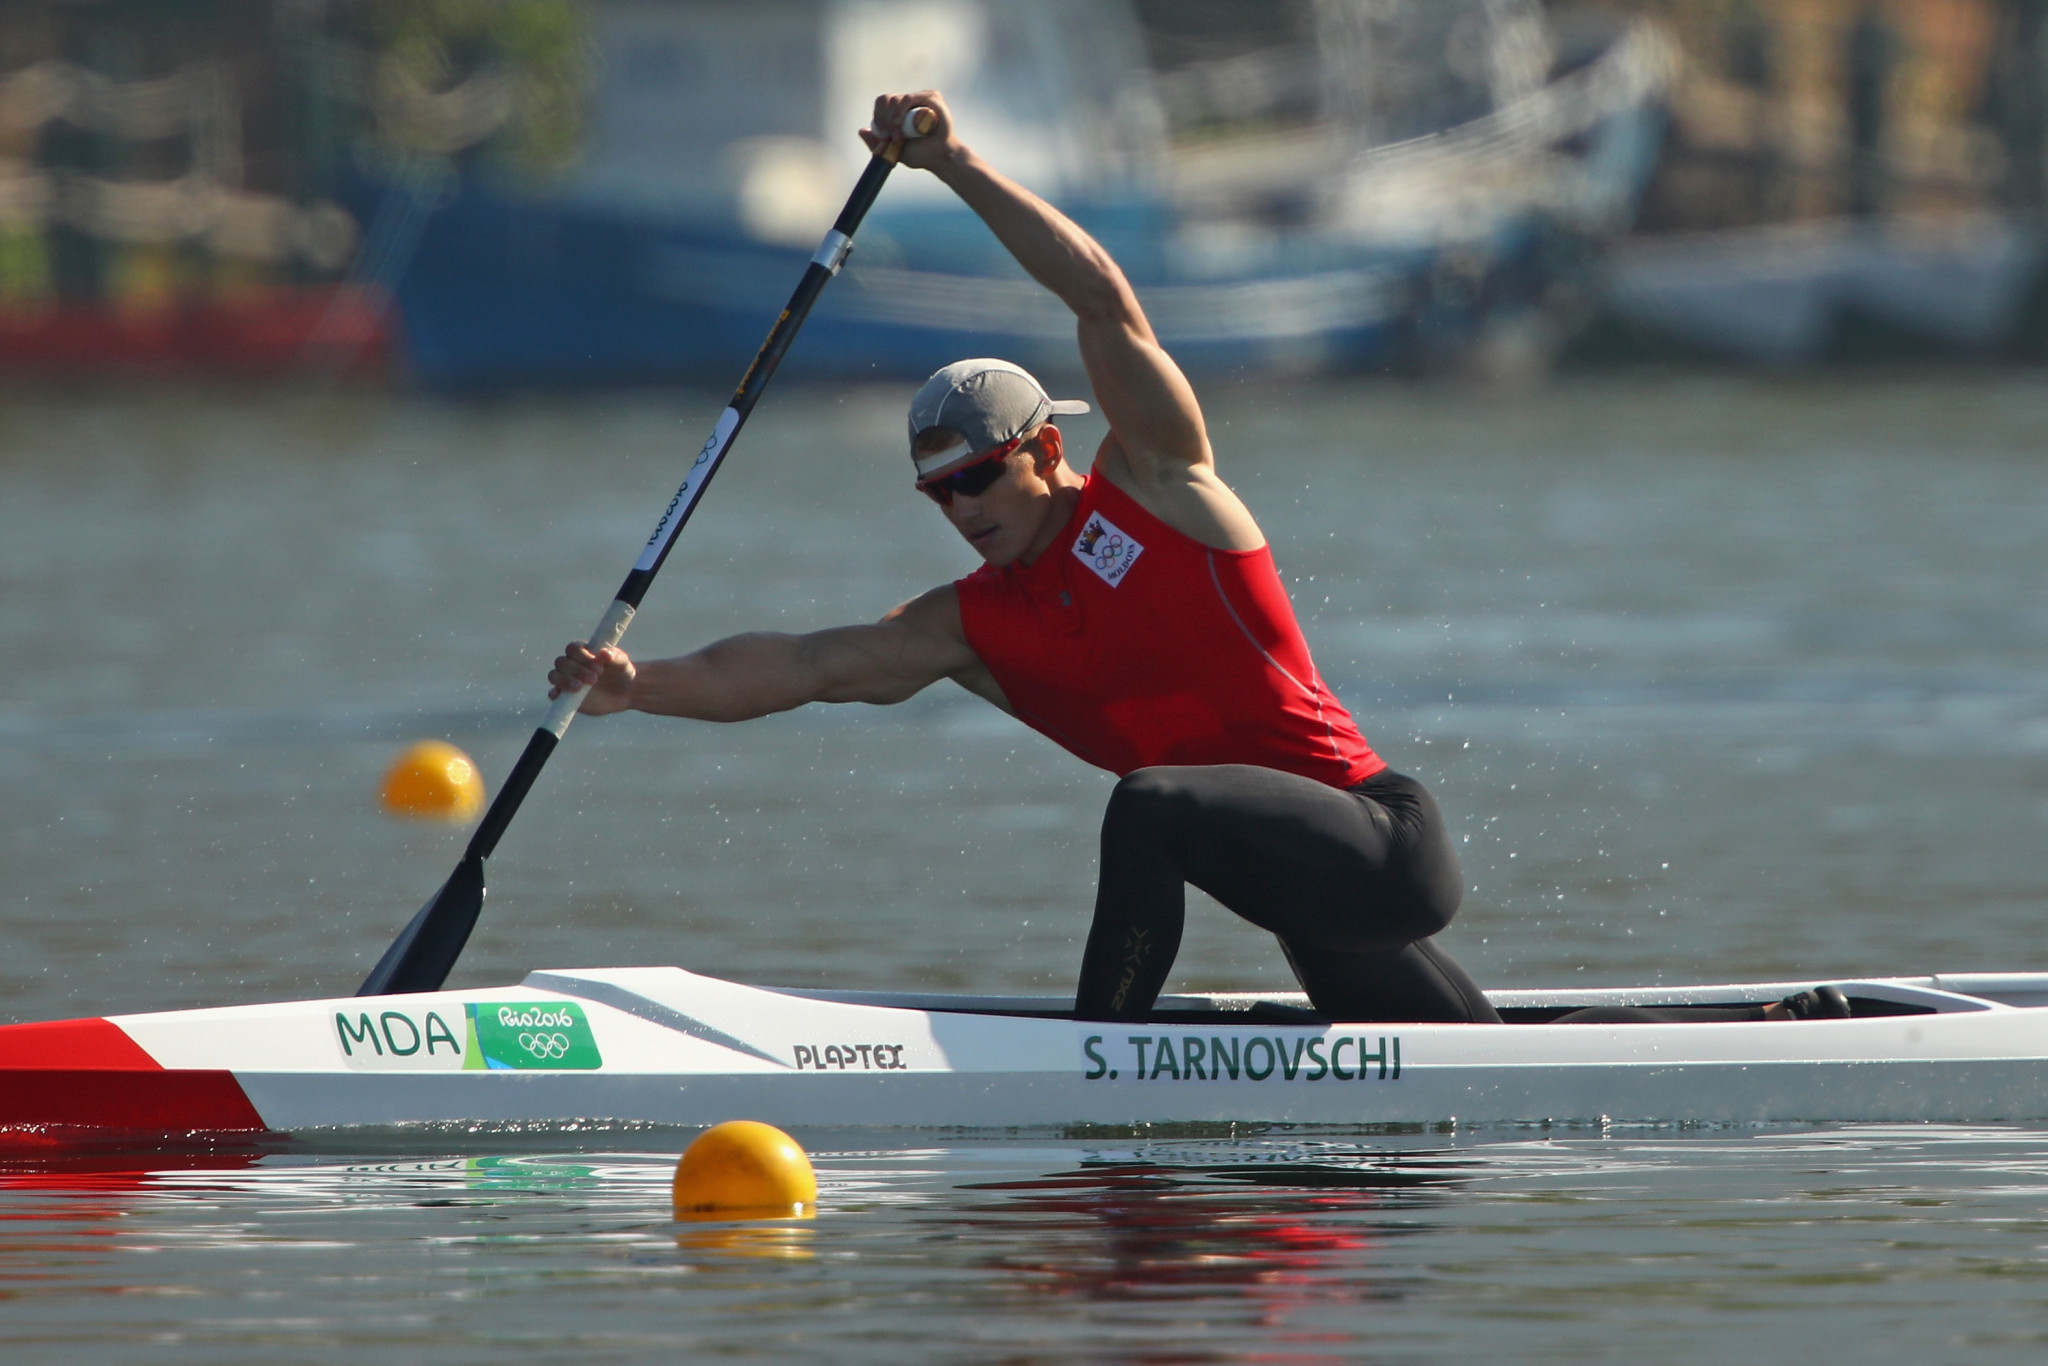 Serghei Tarnovschi qualified for the men's C1 1,000m final with the fastest time ©Getty Images